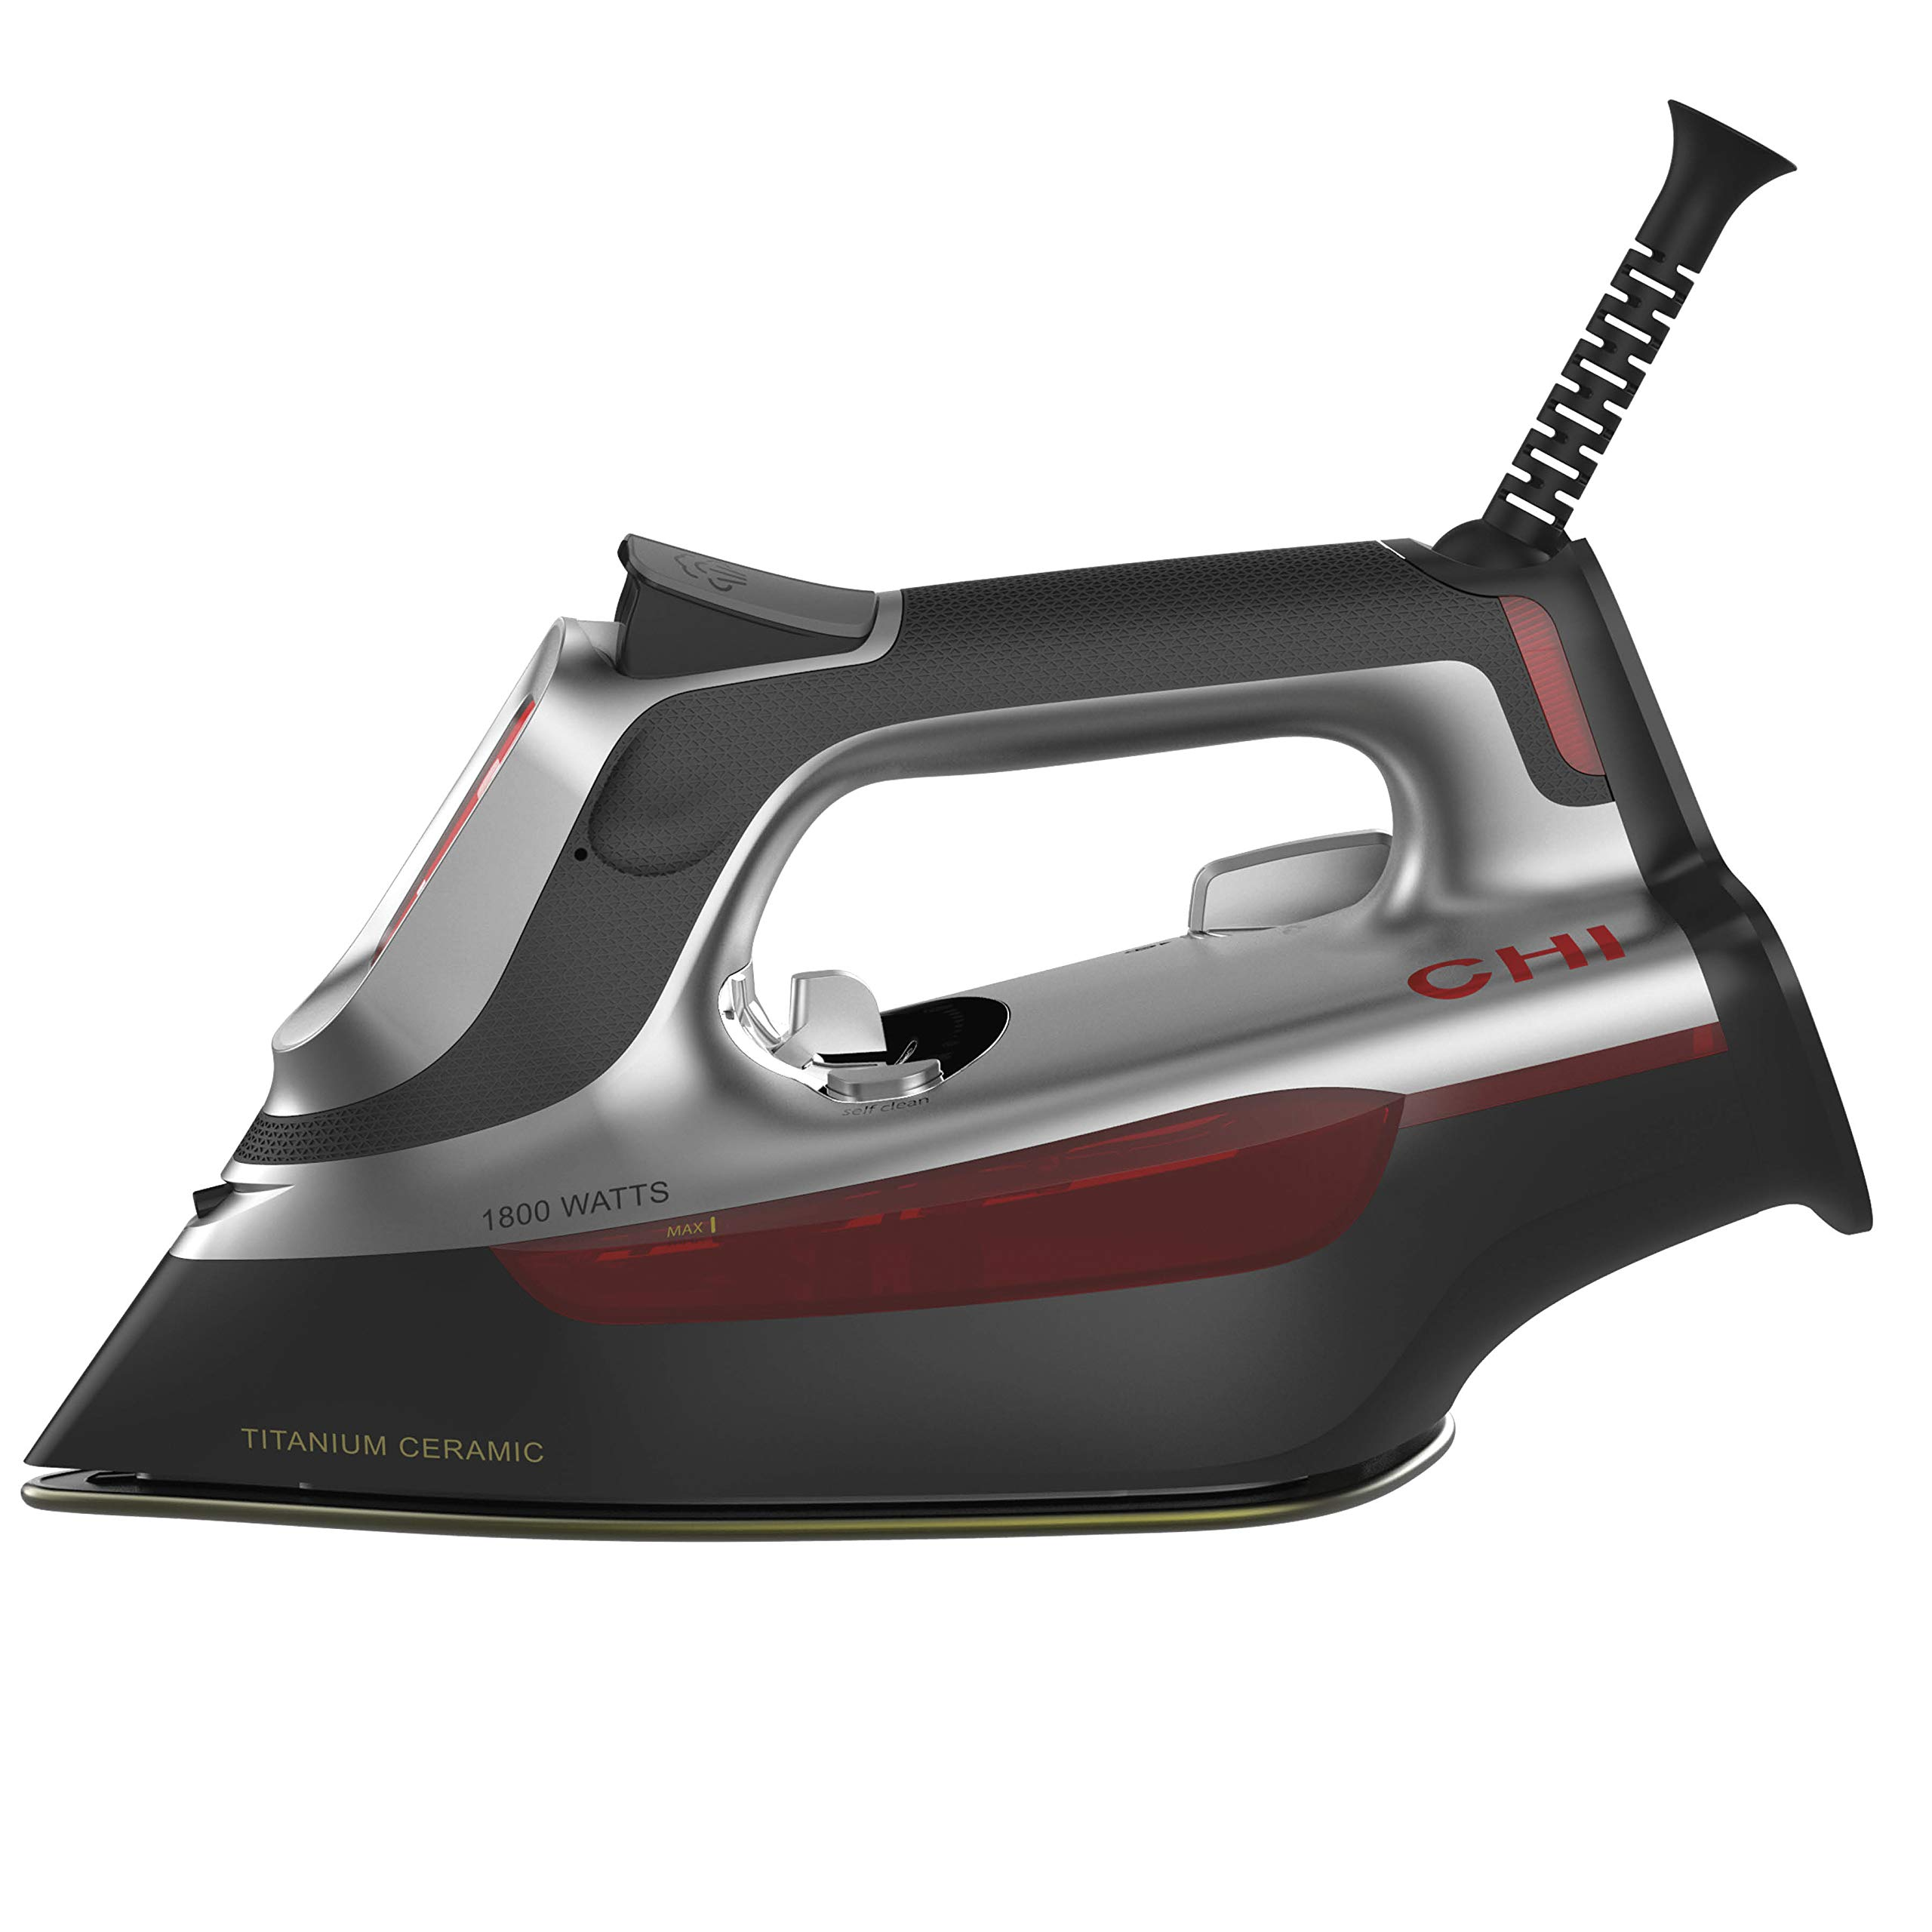 CHI 13103 Touchscreen Clothing Iron Black and Gray